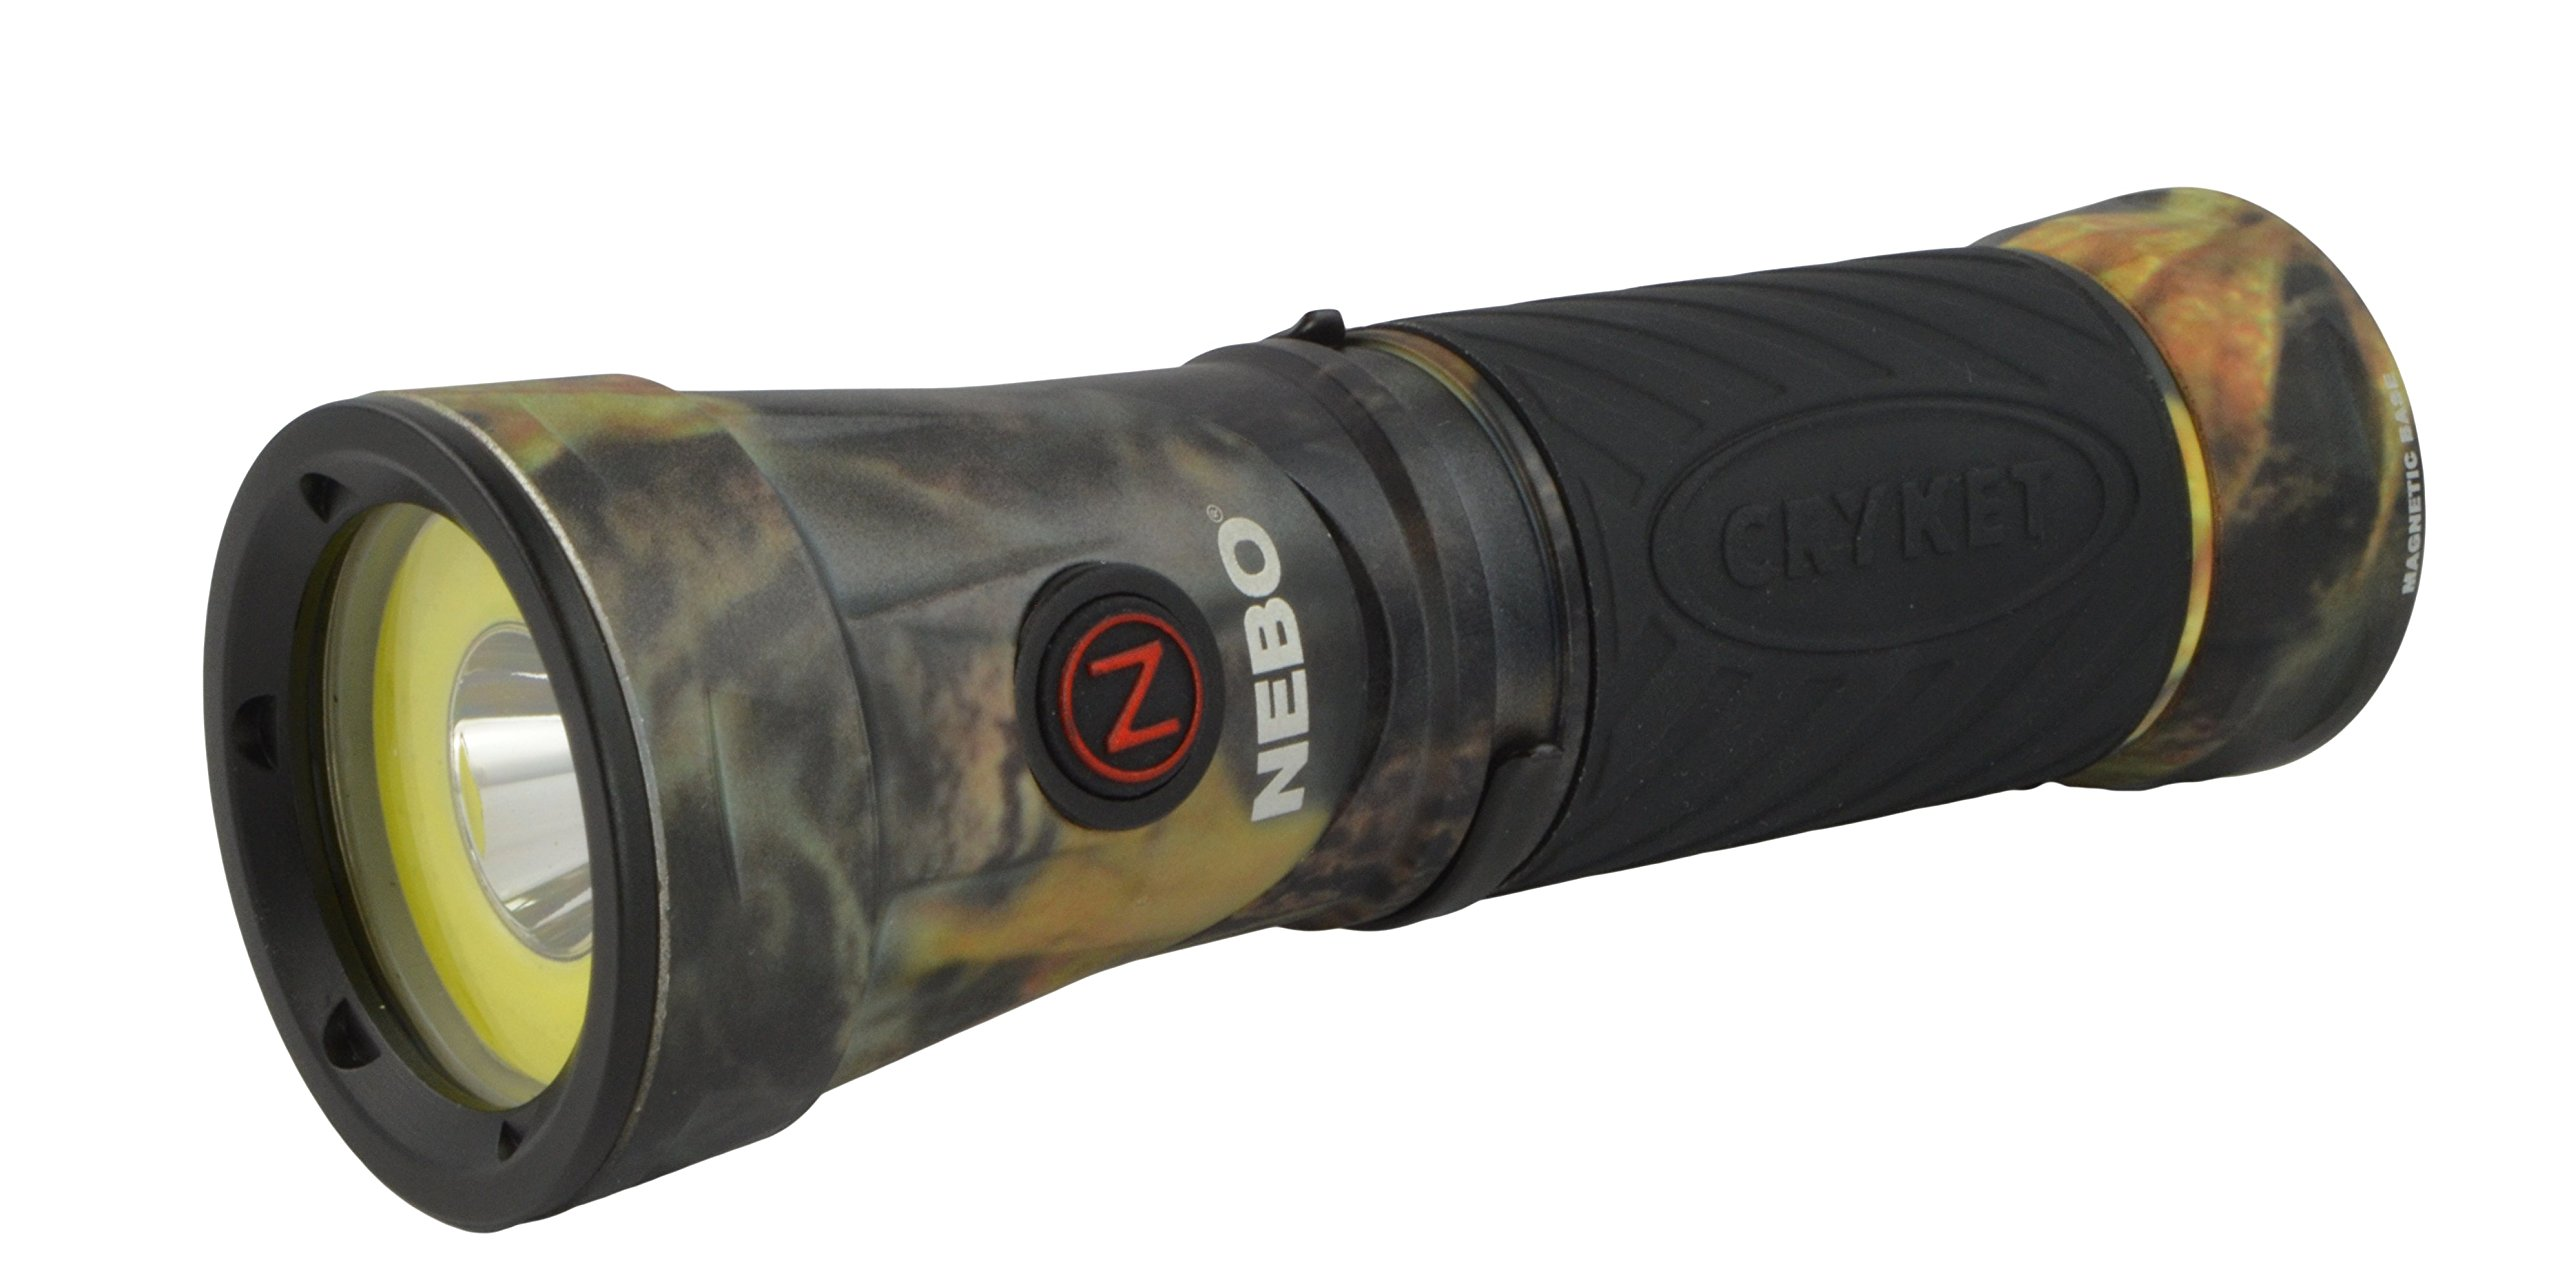 Nebo 6549 Cryket Camo 3-in-1 LED Flashlight/Work Light/Green LED with 8 Nebo AAA Batteries and Lumintrail Keychain Light by NEBO (Image #5)